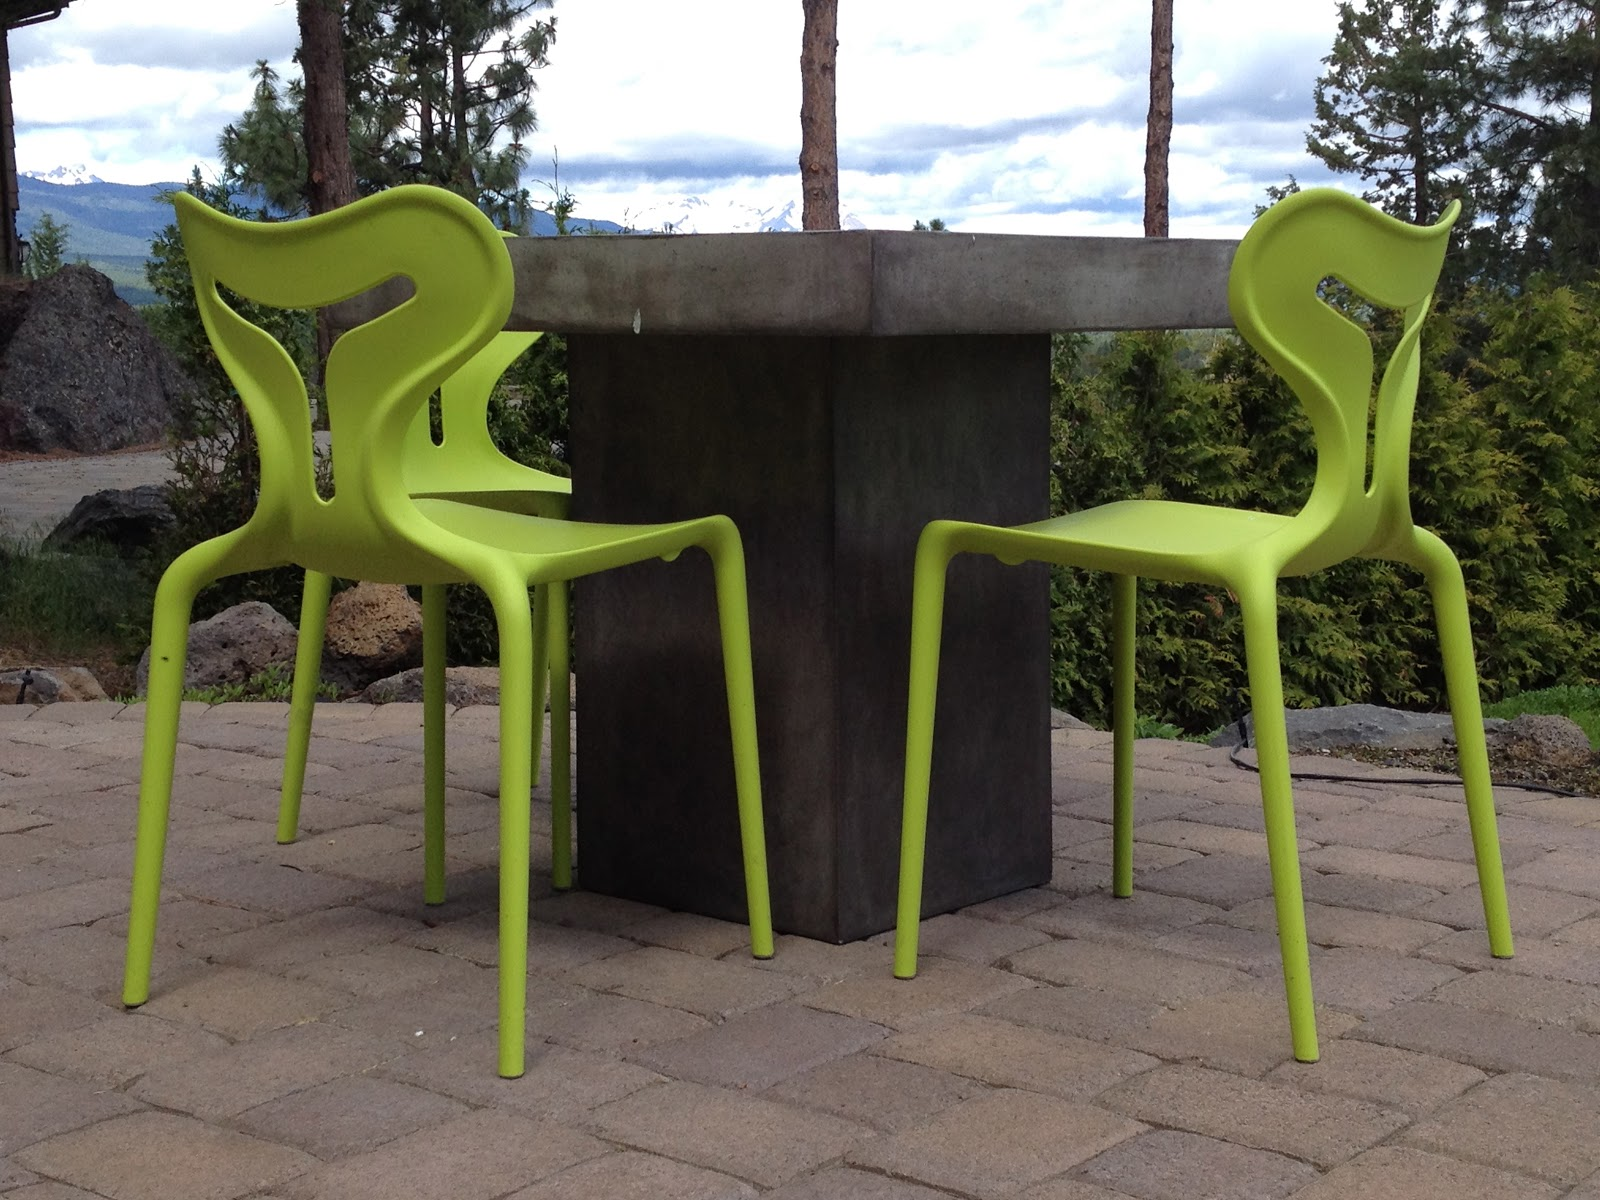 Area 51 Chairs | furnish. blog